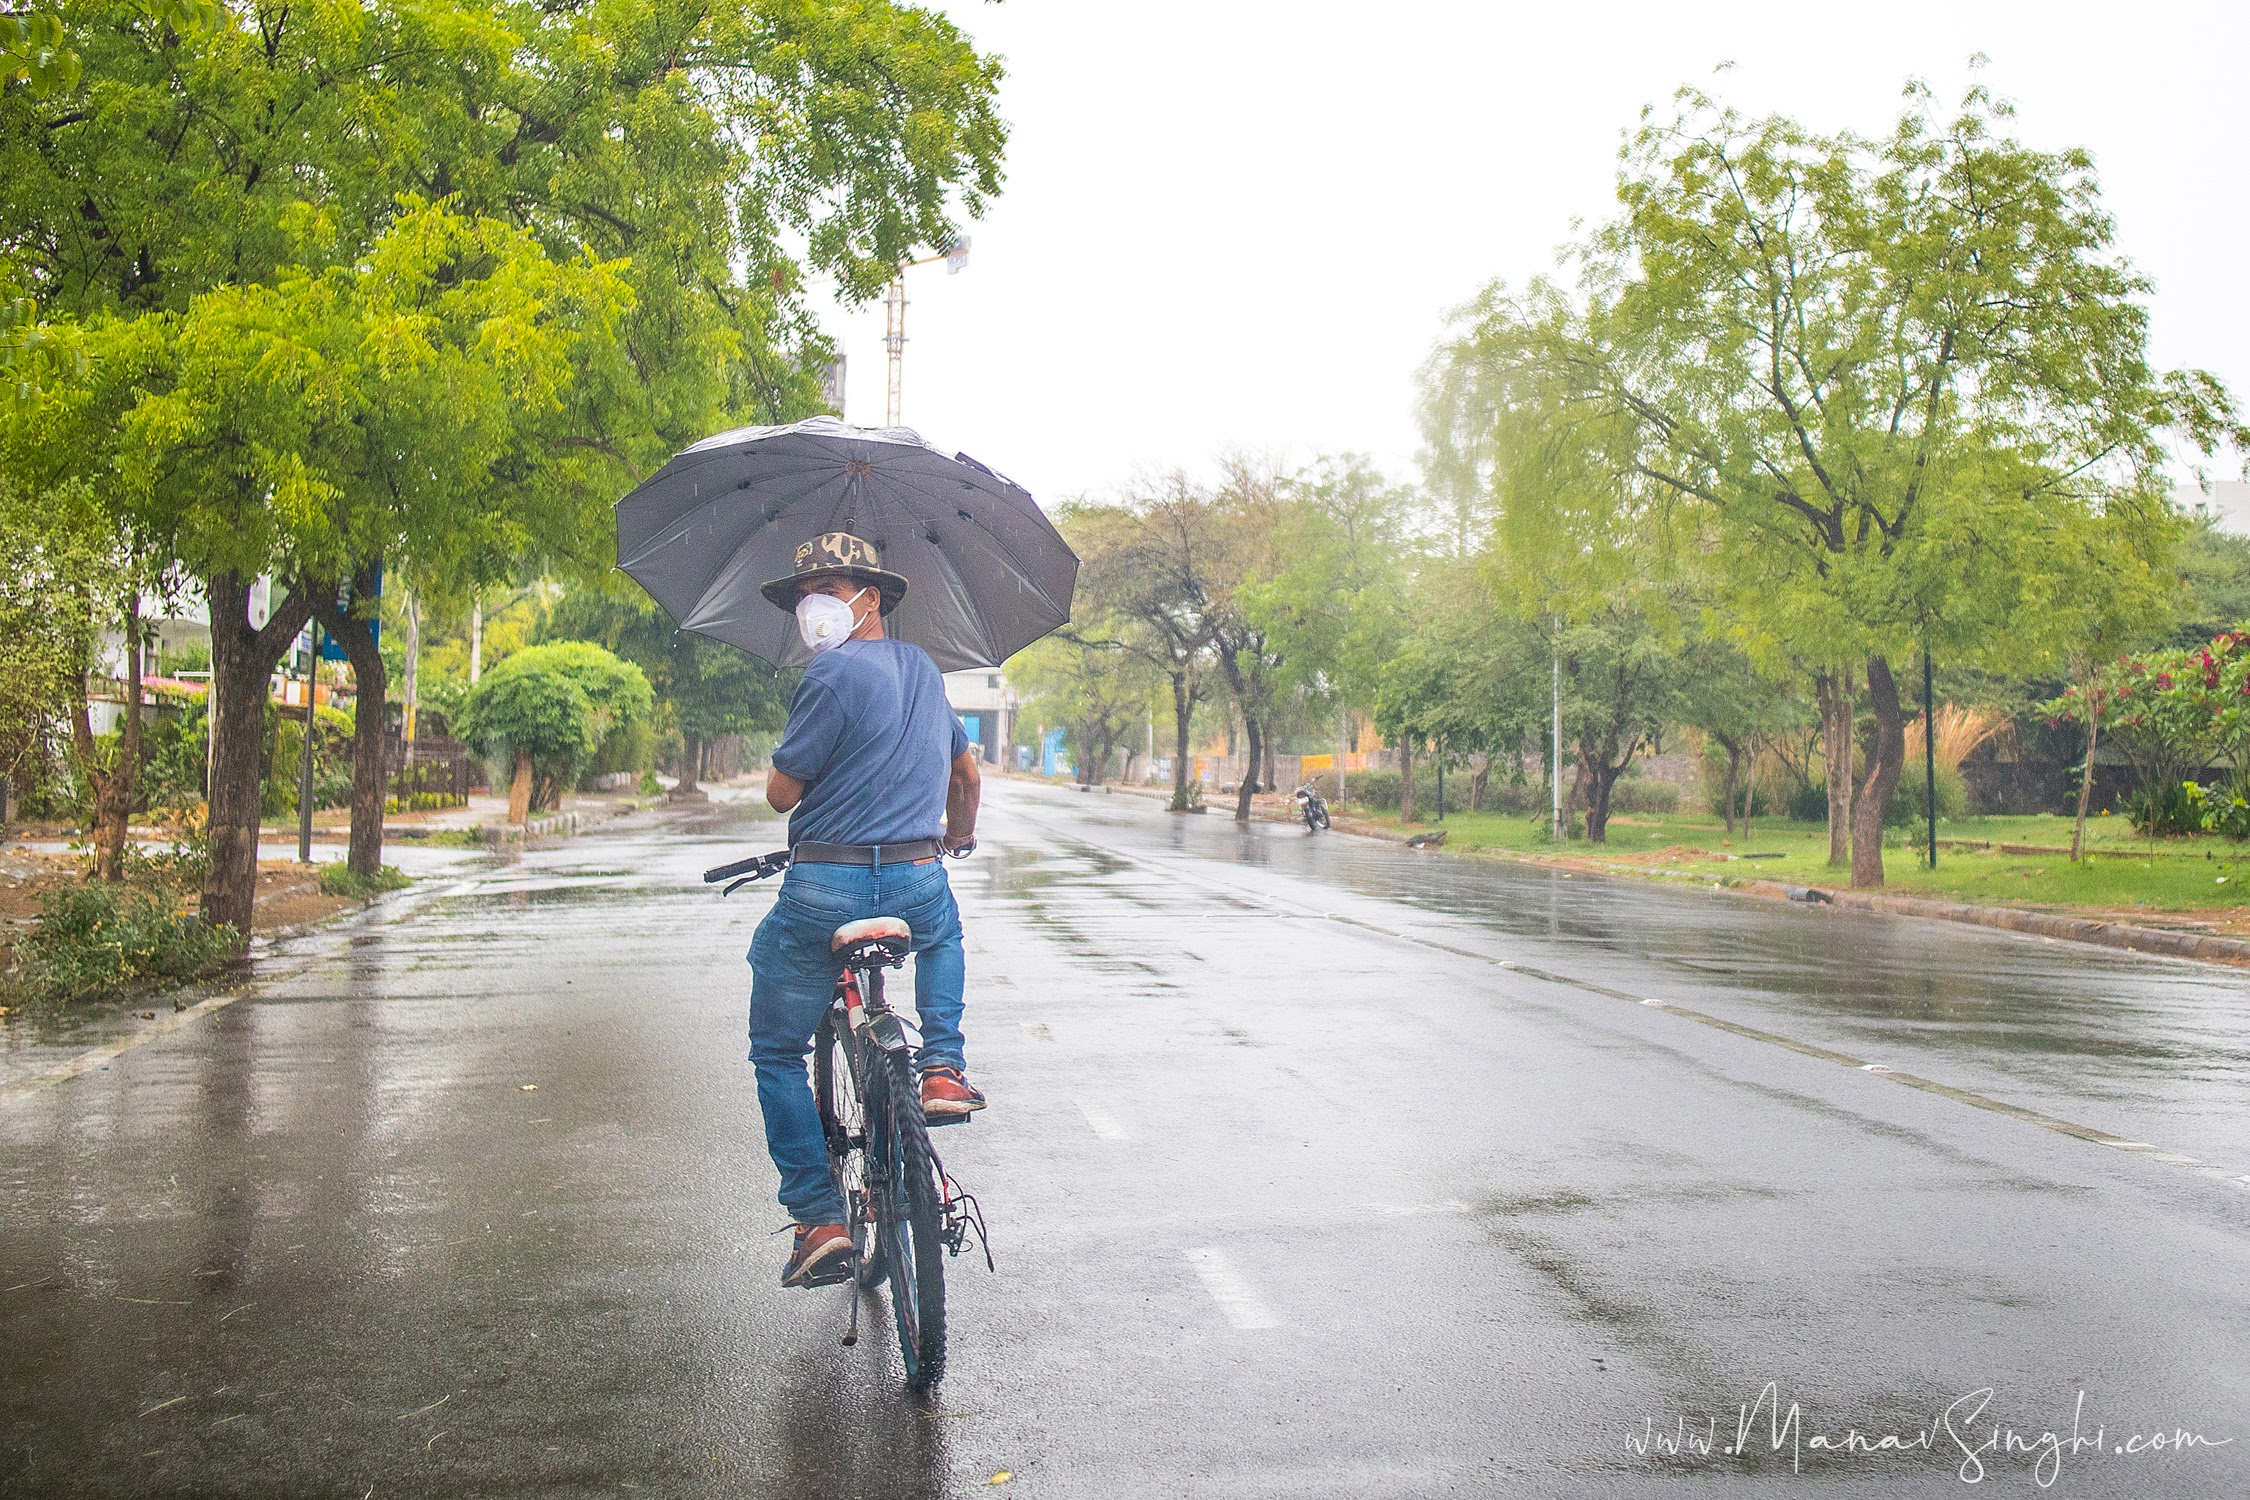 Rains in Jaipur due to Weather Disturbance created by Tauktae Cyclonic Storm.